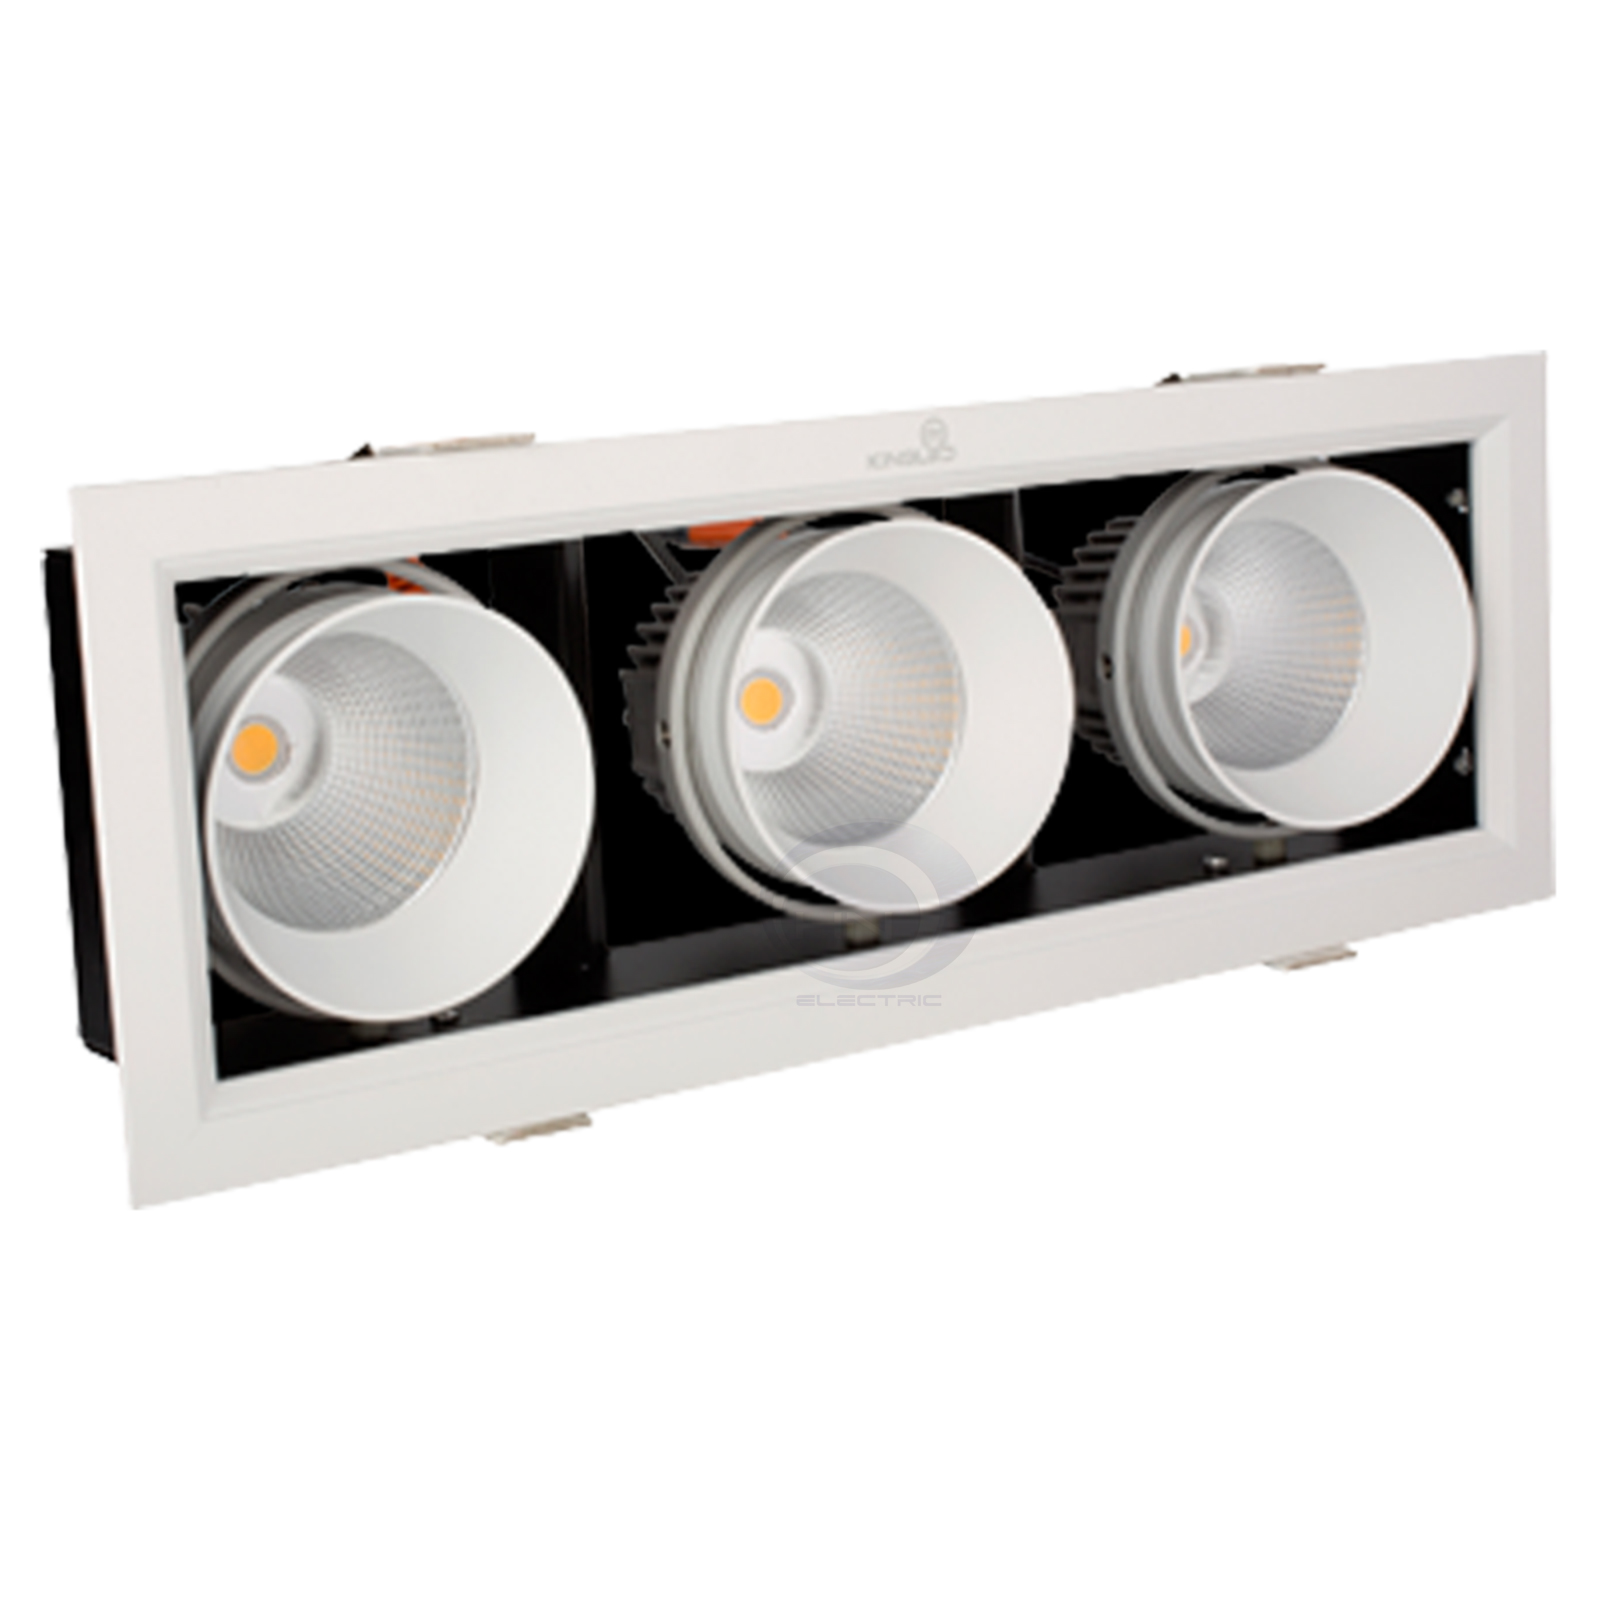 Đèn Led Spotlight GL Series âm trần 3x10W KingLed